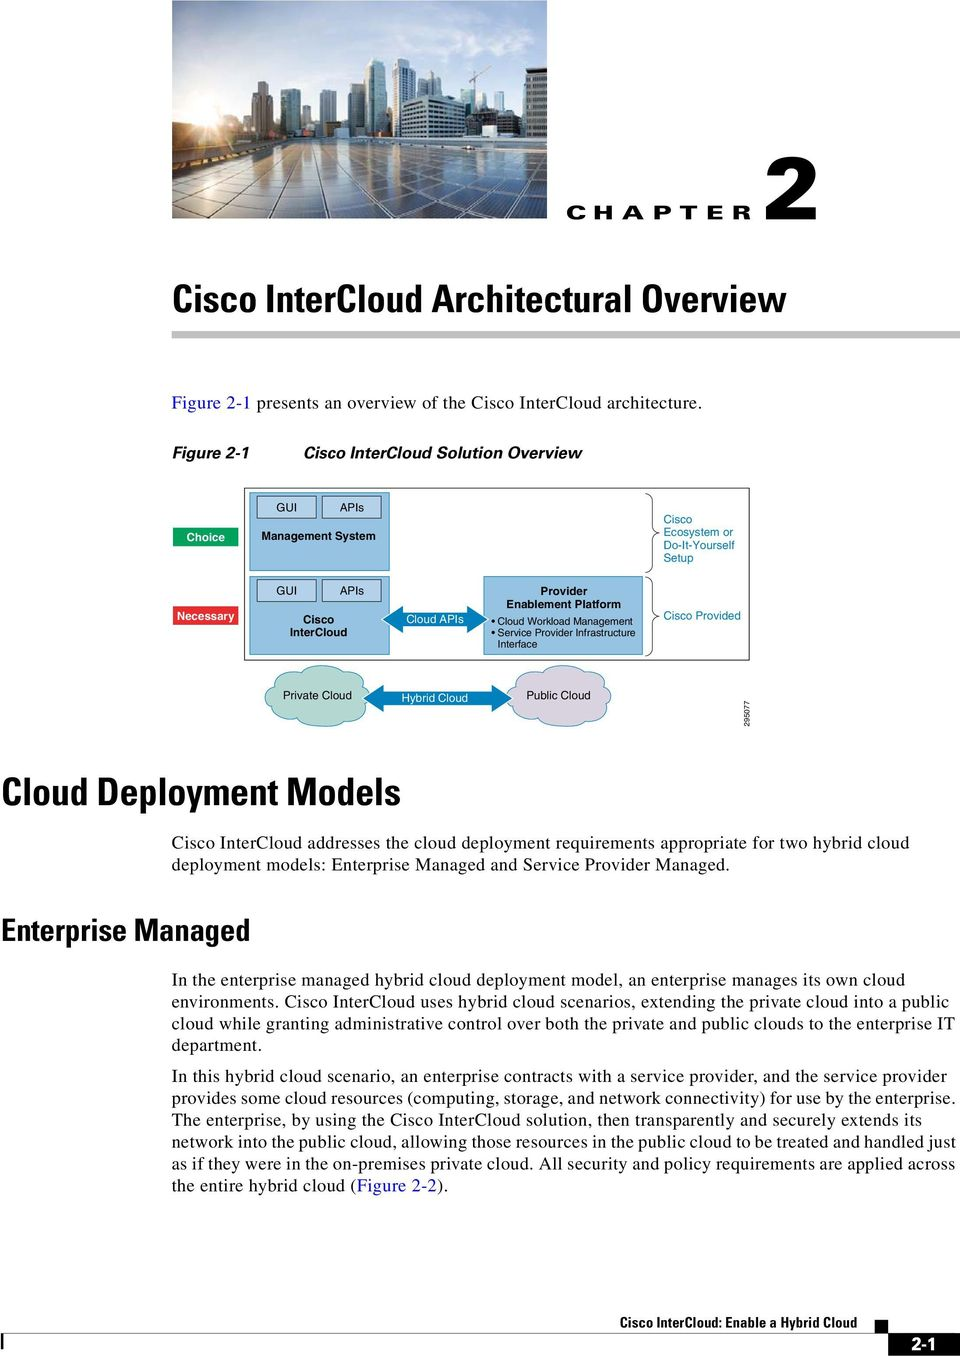 Cloud Workload Management Service Provider Infrastructure Interface Cisco Provided Private Cloud Hybrid Cloud Public Cloud 295077 Cloud Deployment Models Cisco InterCloud addresses the cloud